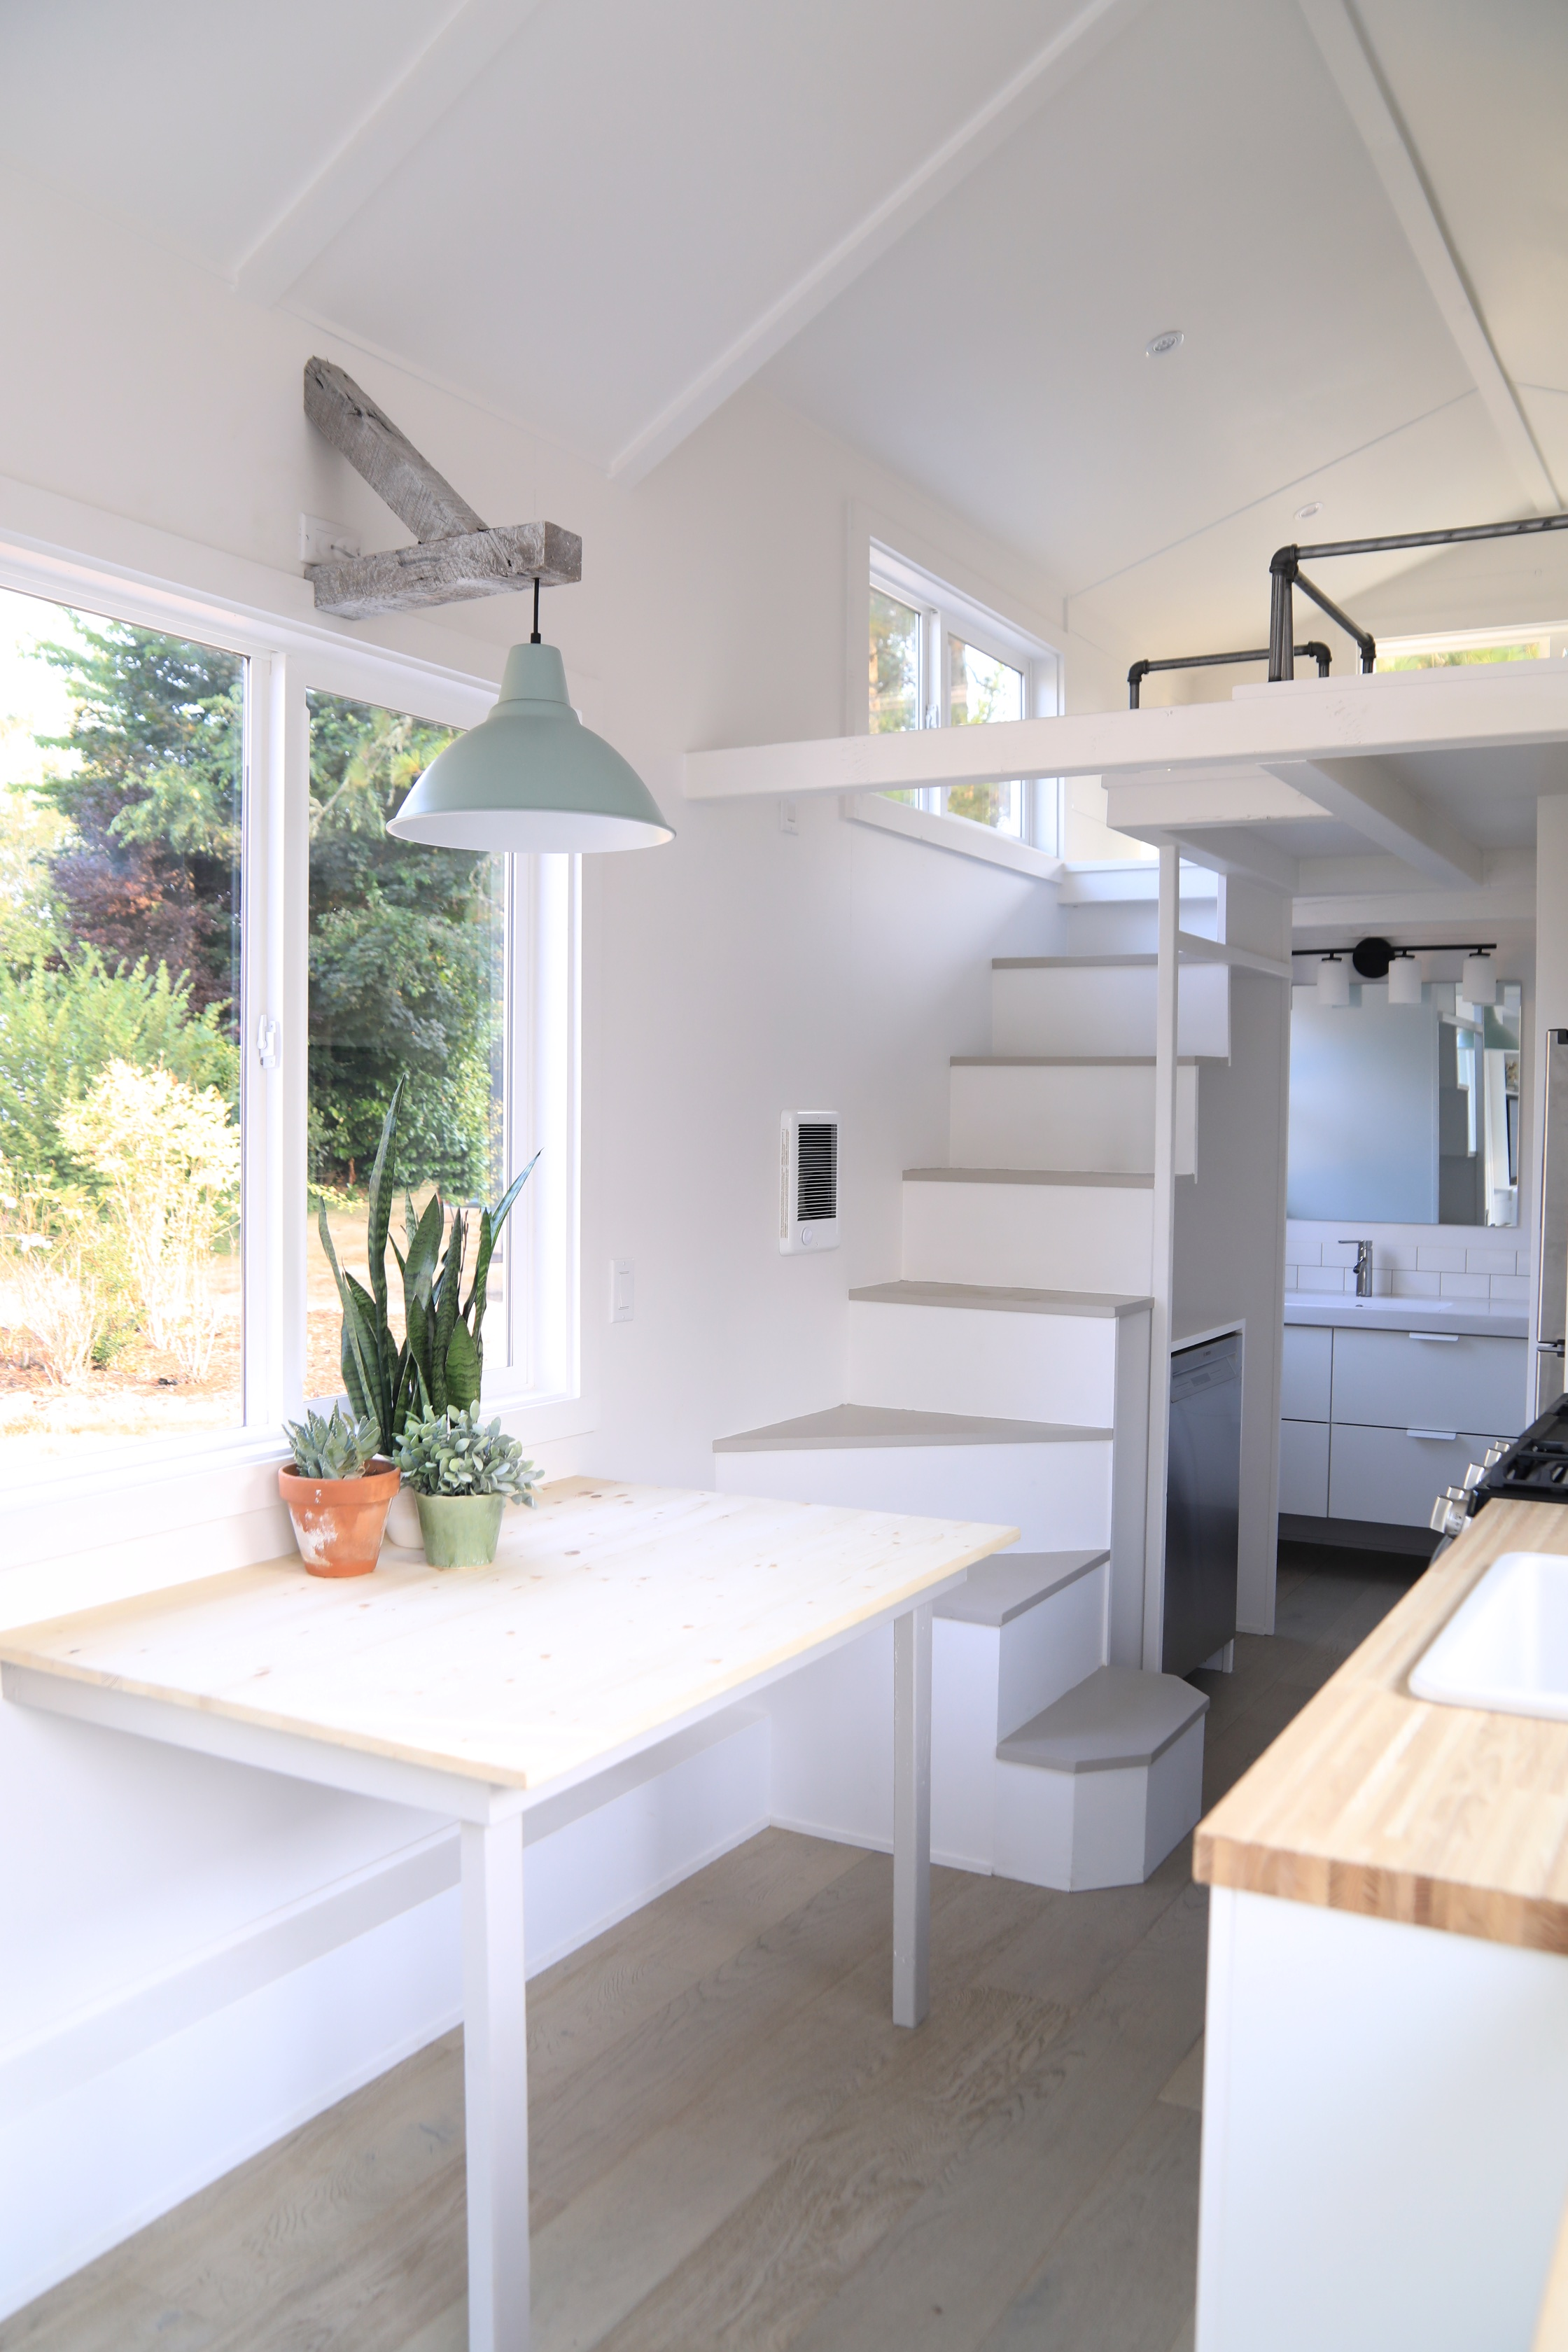 Malibu Tiny Home by Handcrafted Movement